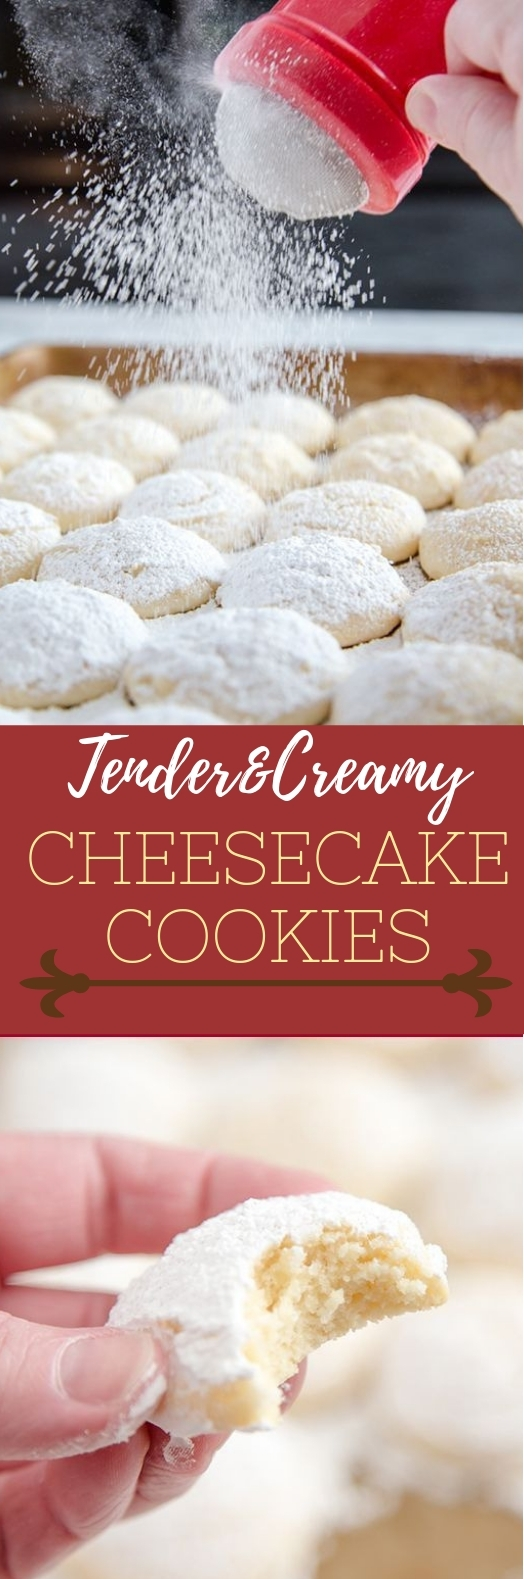 CHEESECAKE COOKIES #sweet #cookies